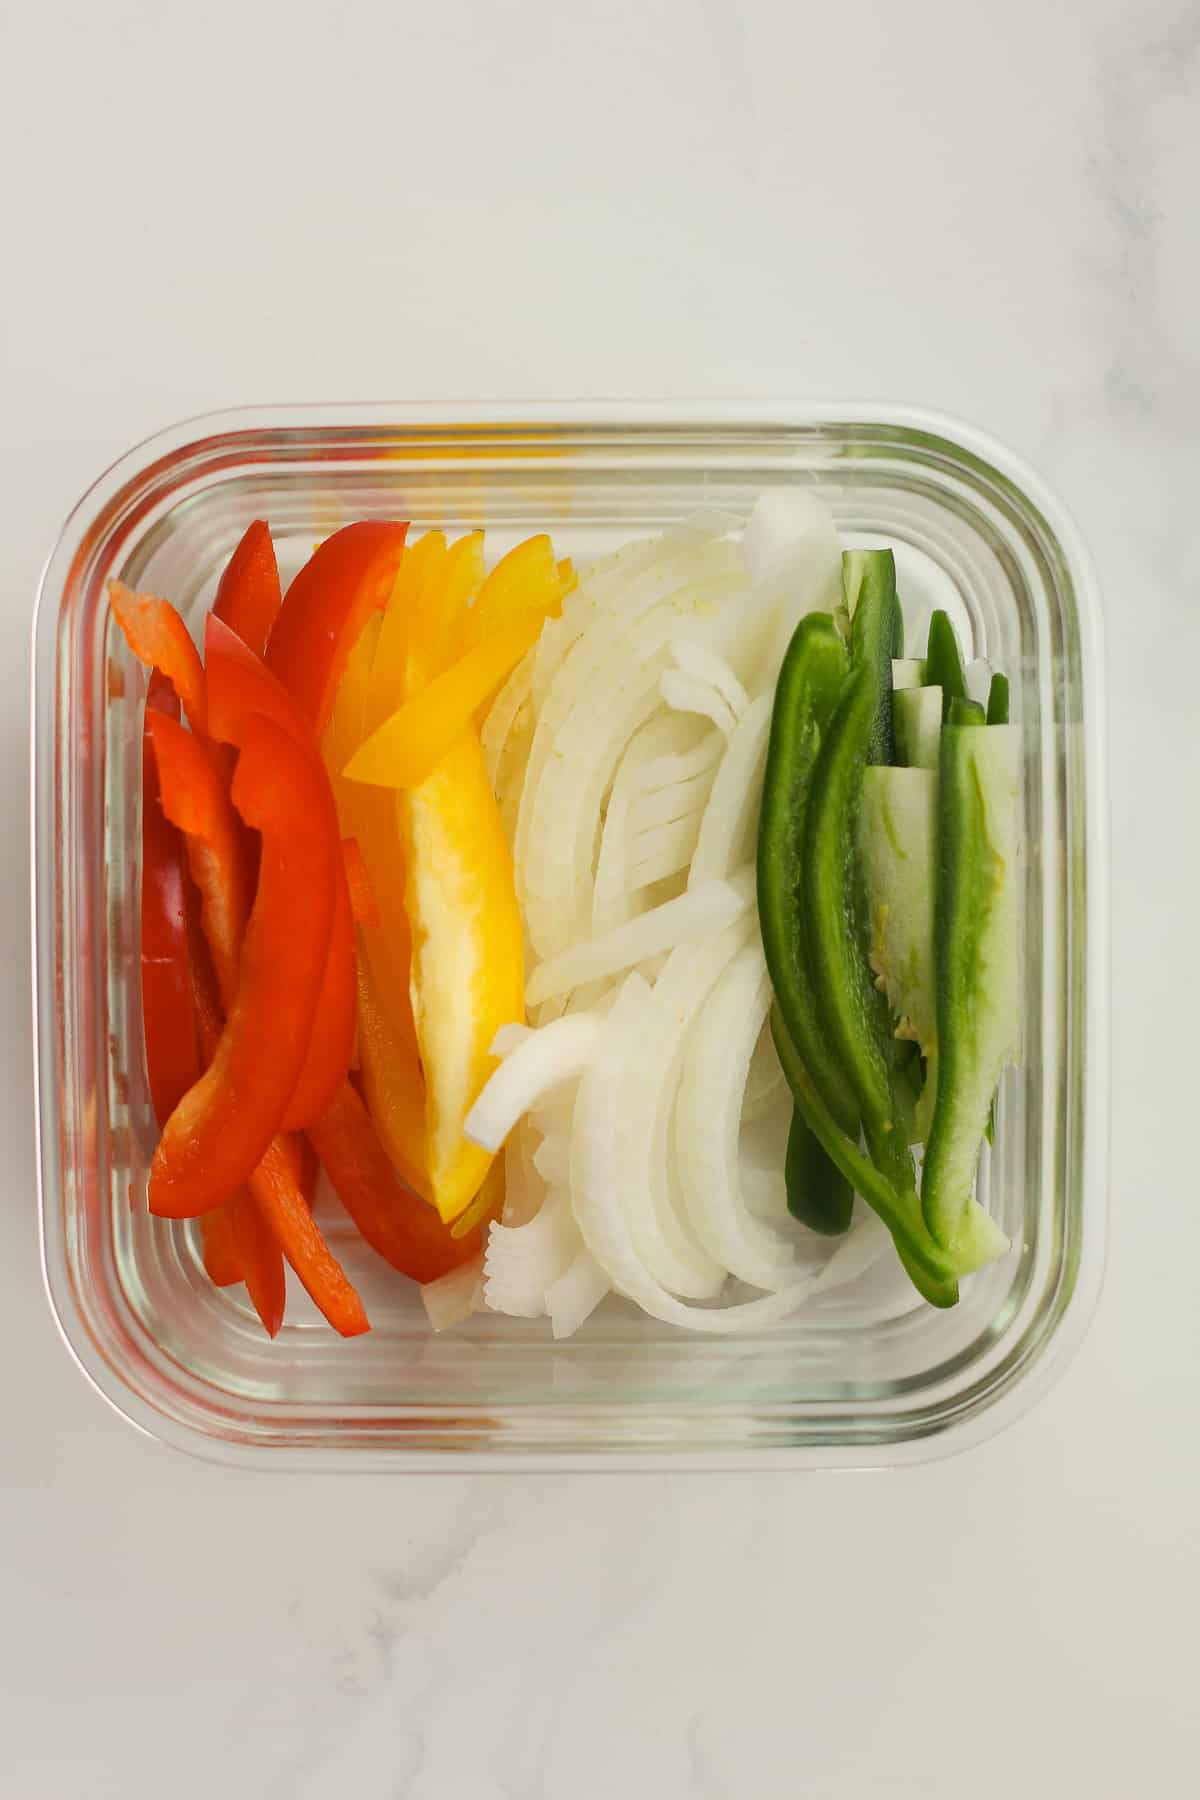 Sliced peppers and onions in a glass bowl.